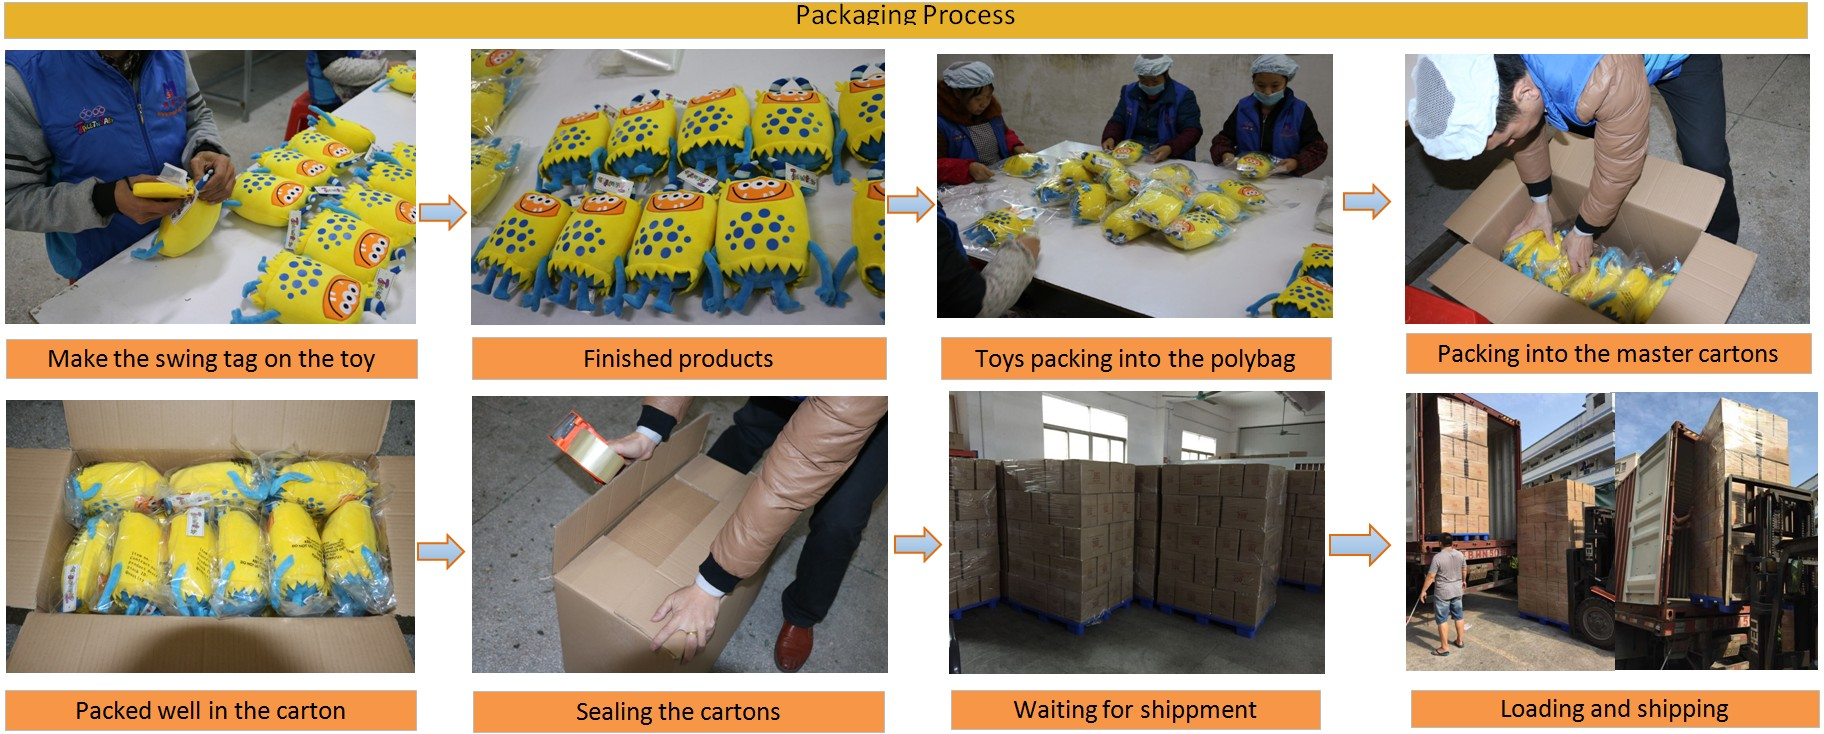 packaing process3.JPG